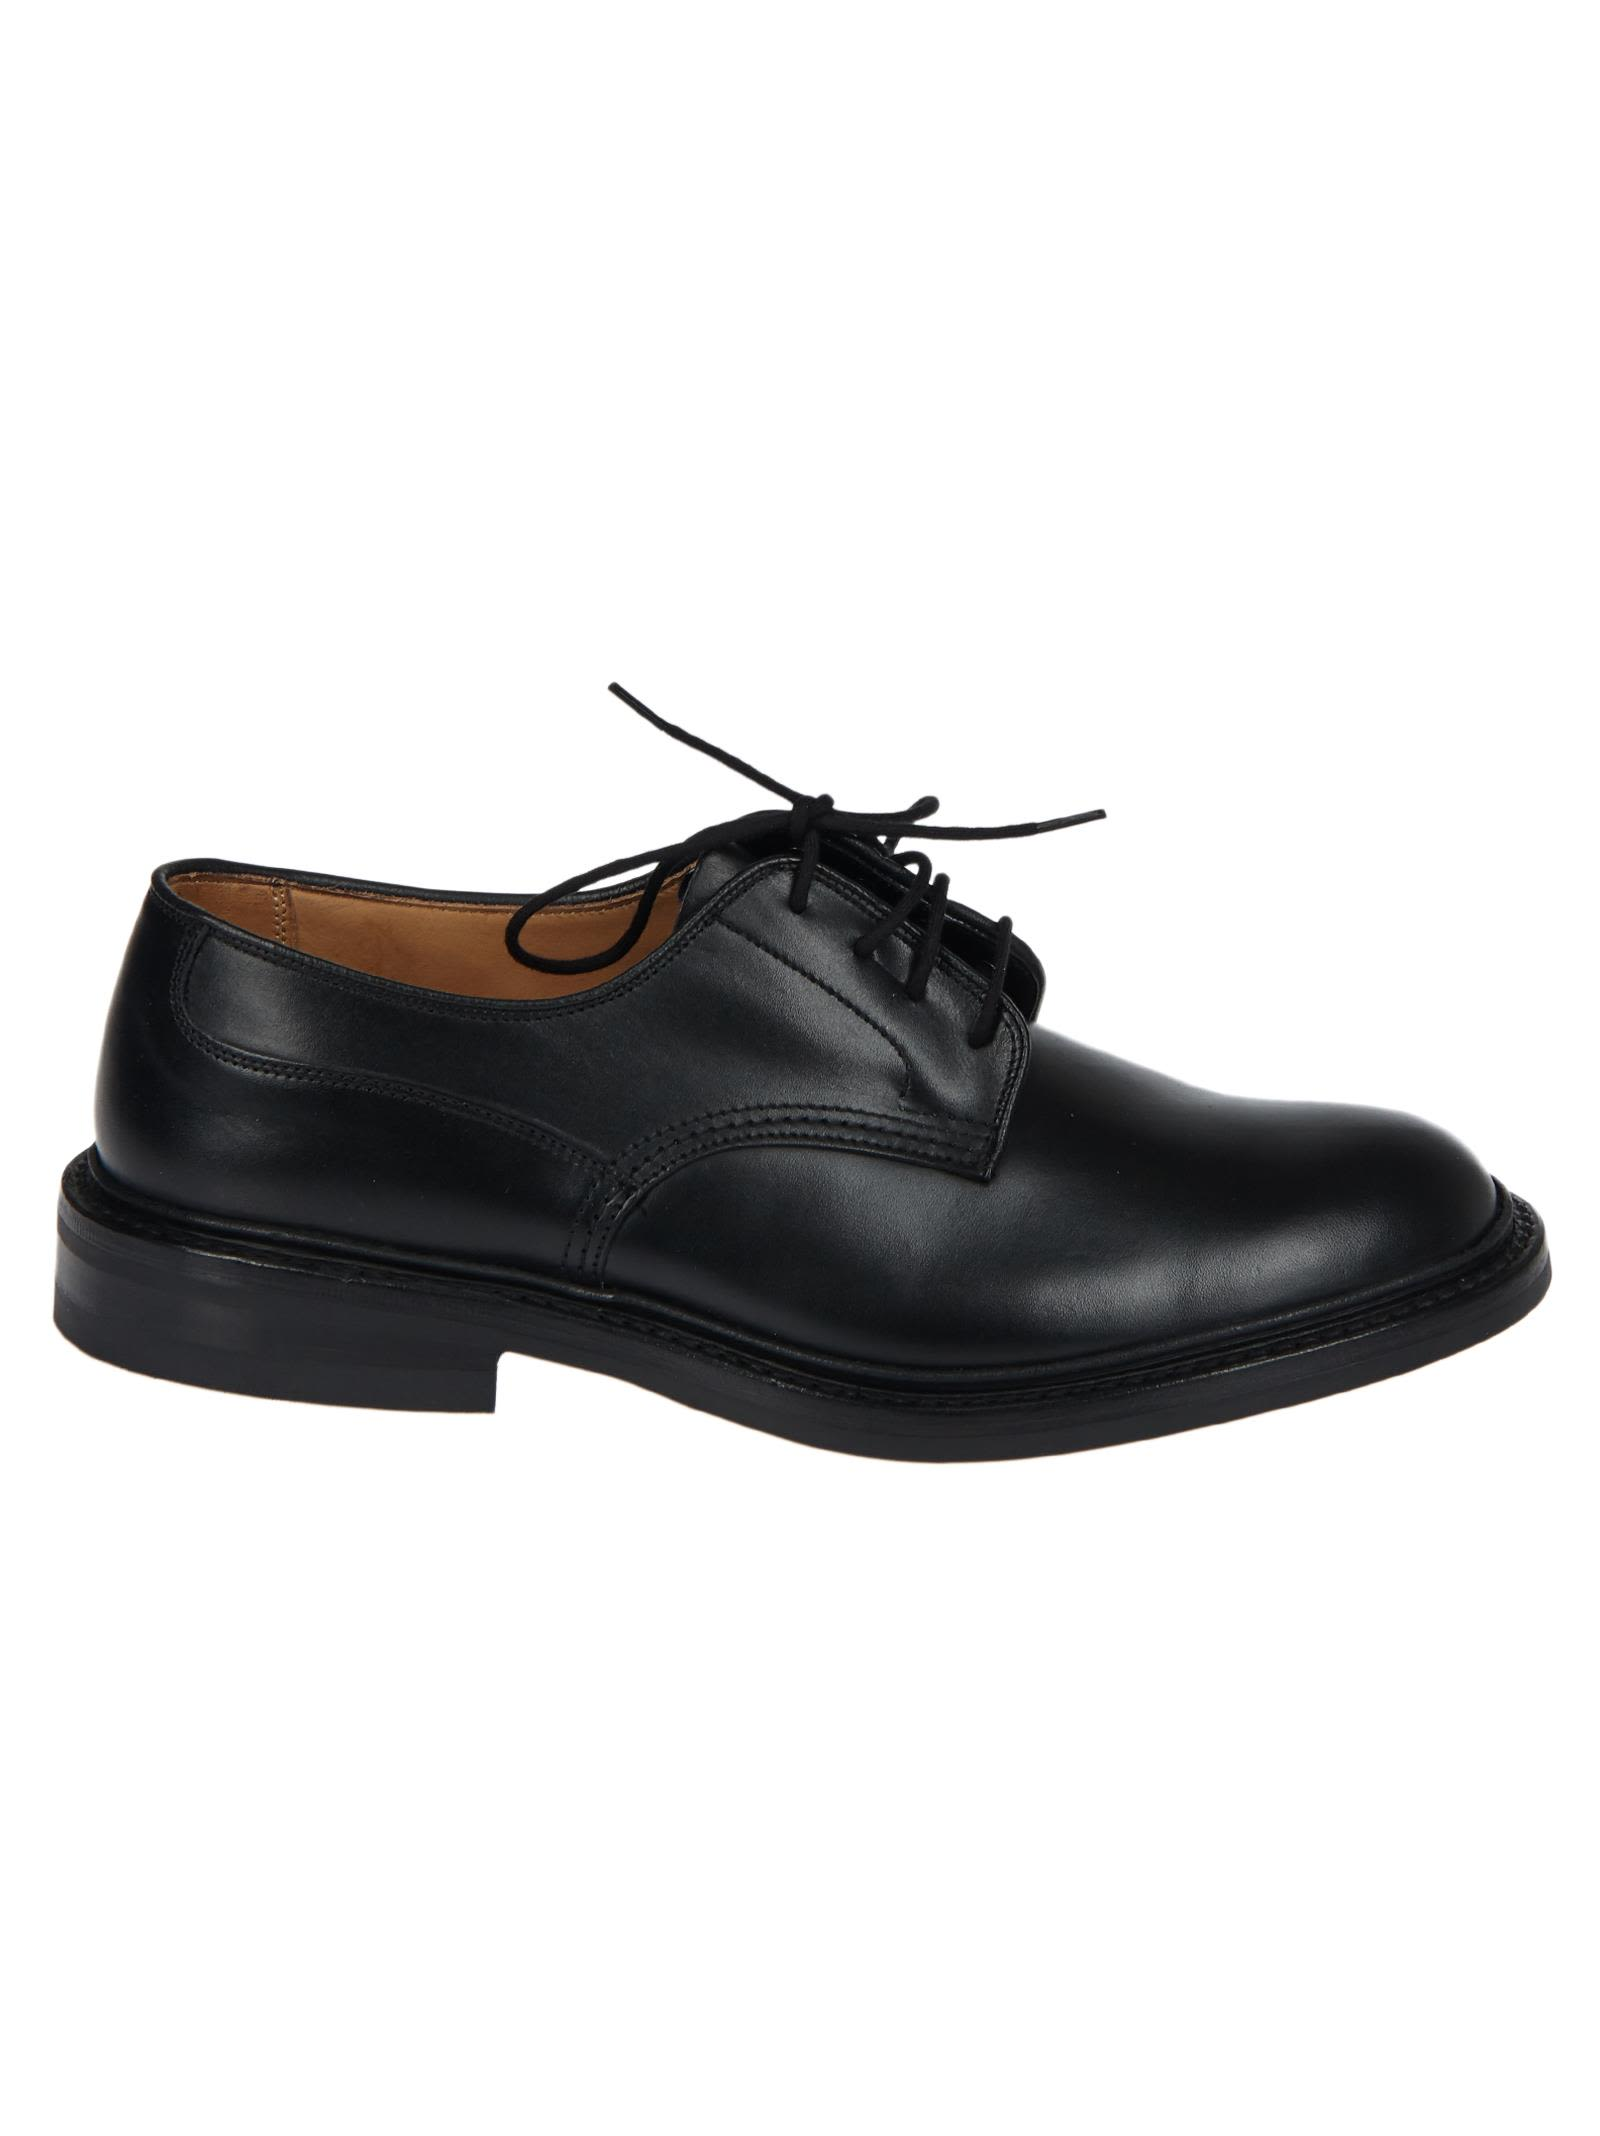 Tricker's Woodstock Derby Shoes